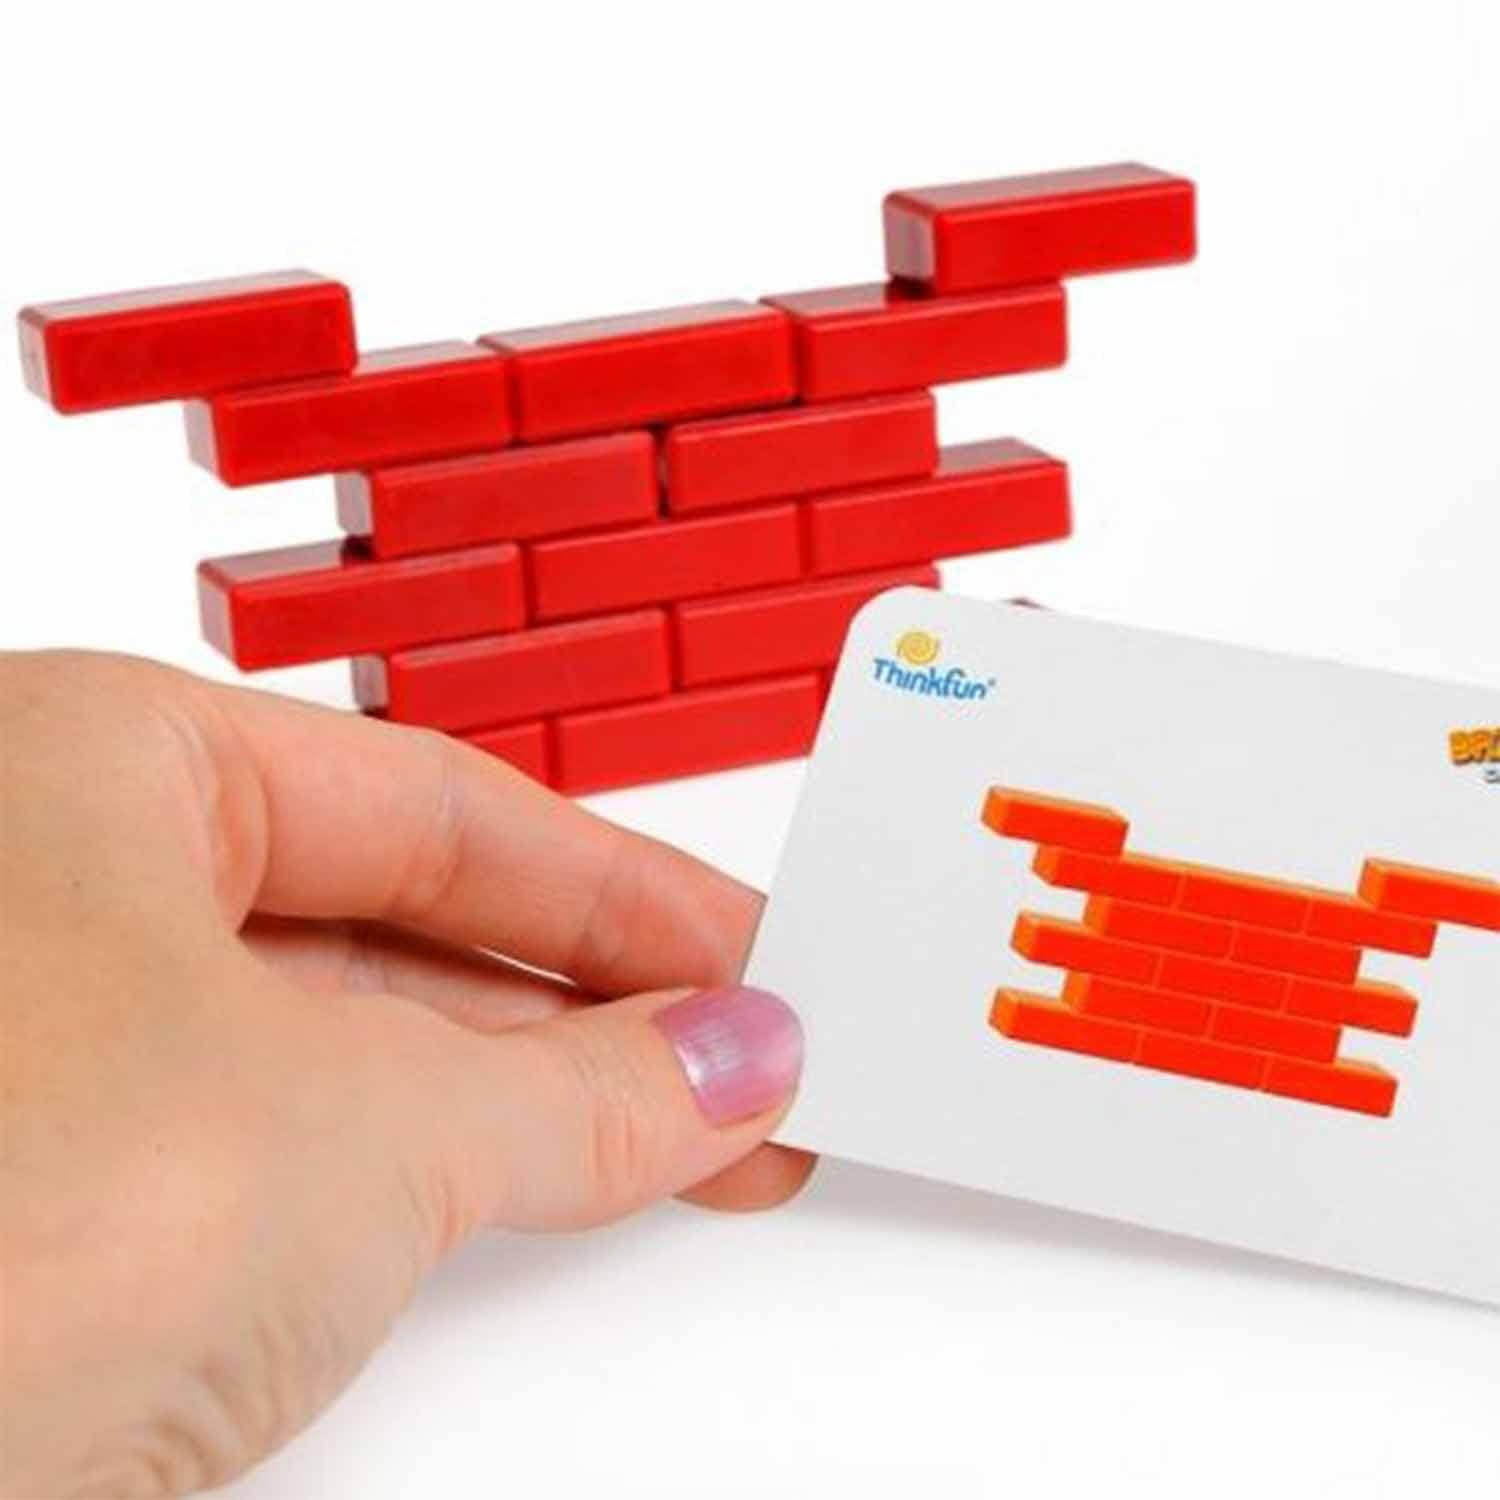 ThinkFun Tuğla Örme Brick by Brick